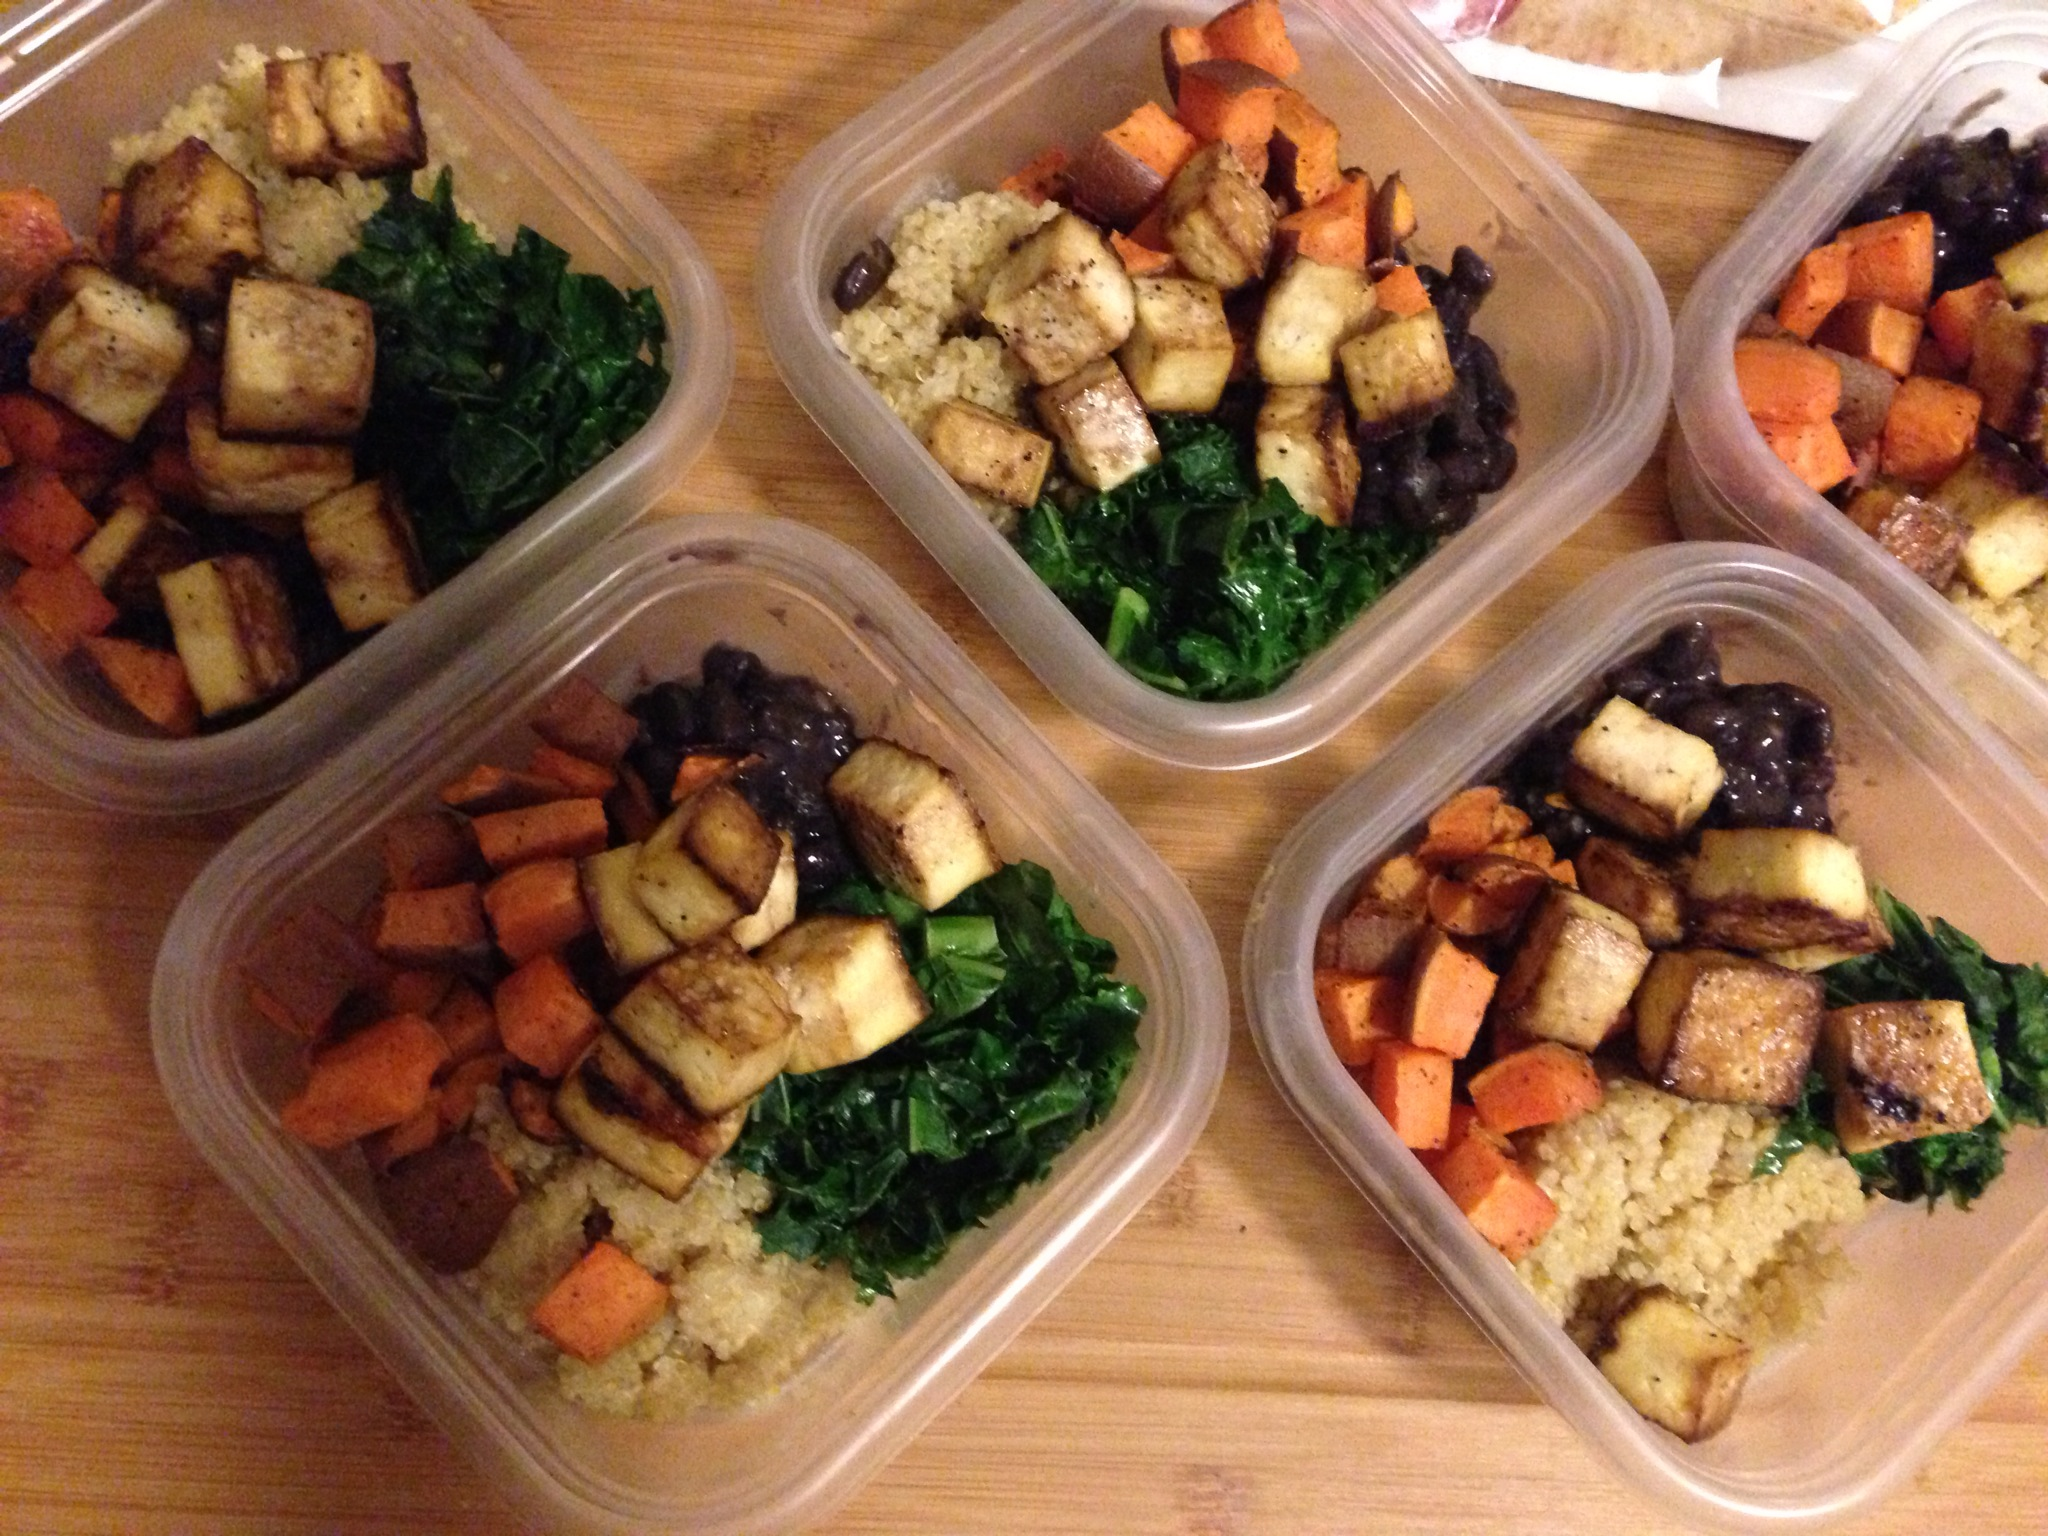 Tips To Pack Affordable, Healthy Lunches photo